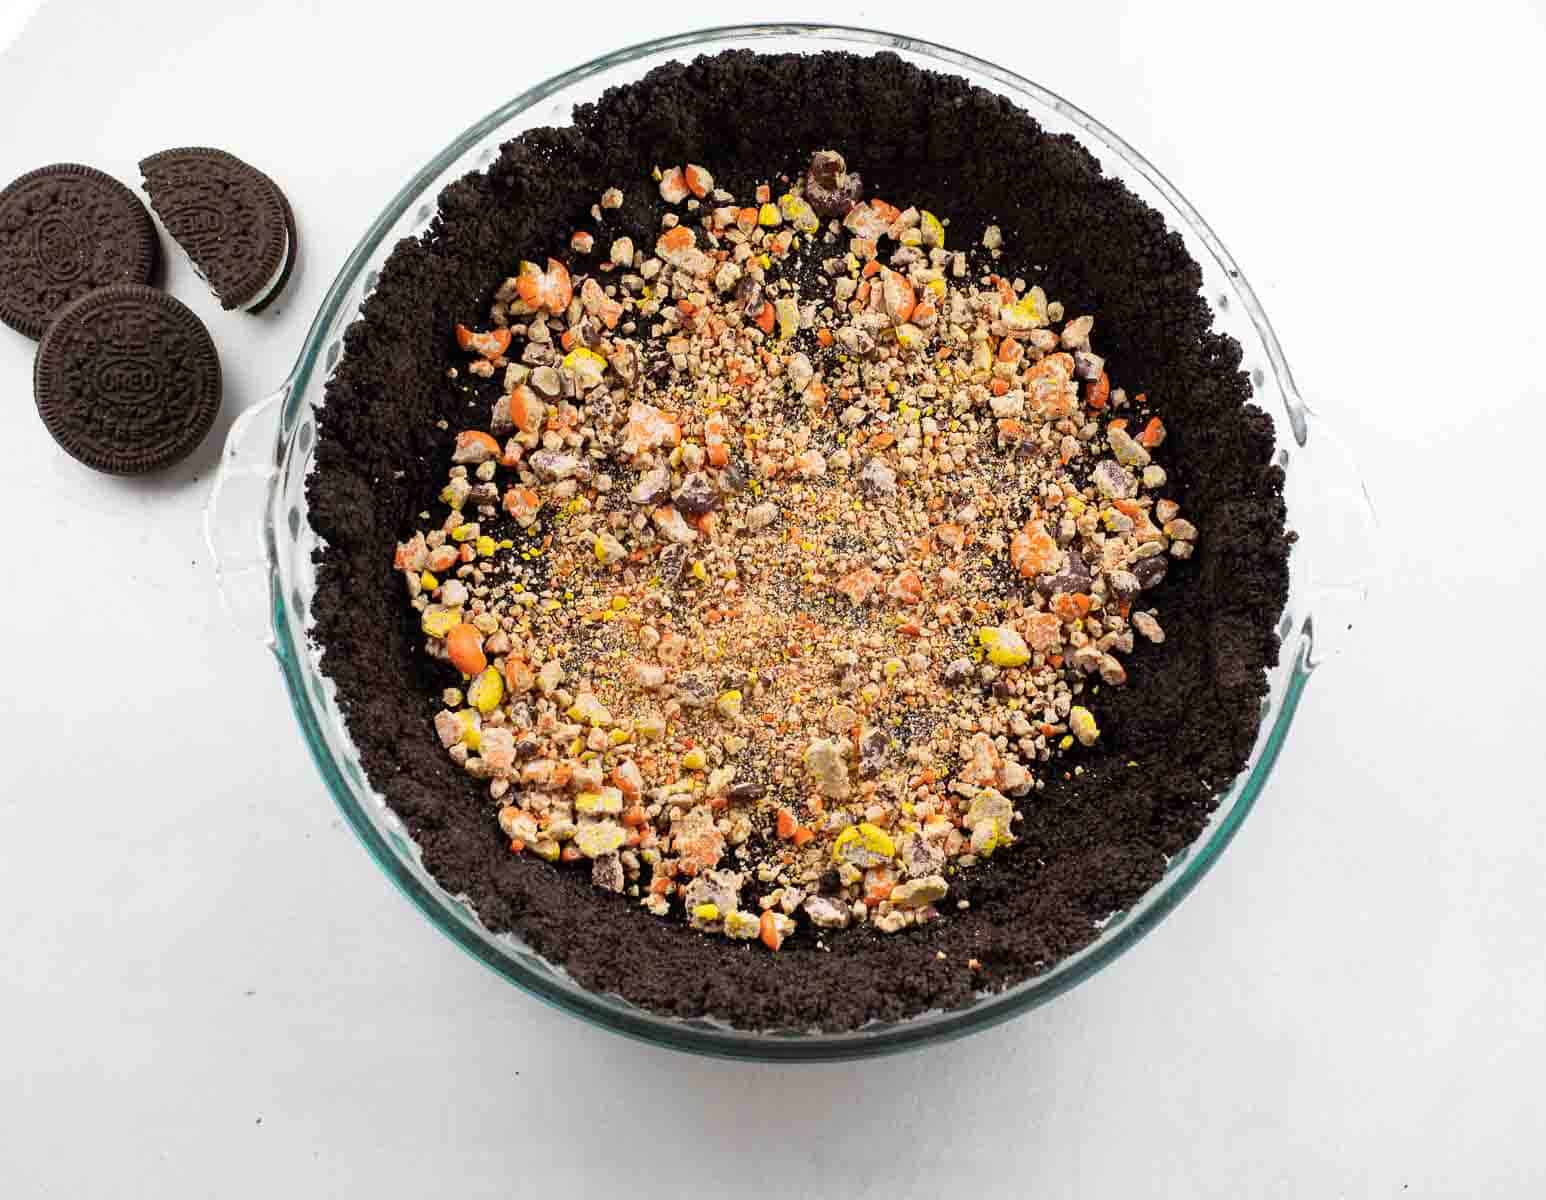 gluten free oreo crust sprinkled with Reese's pieces candy